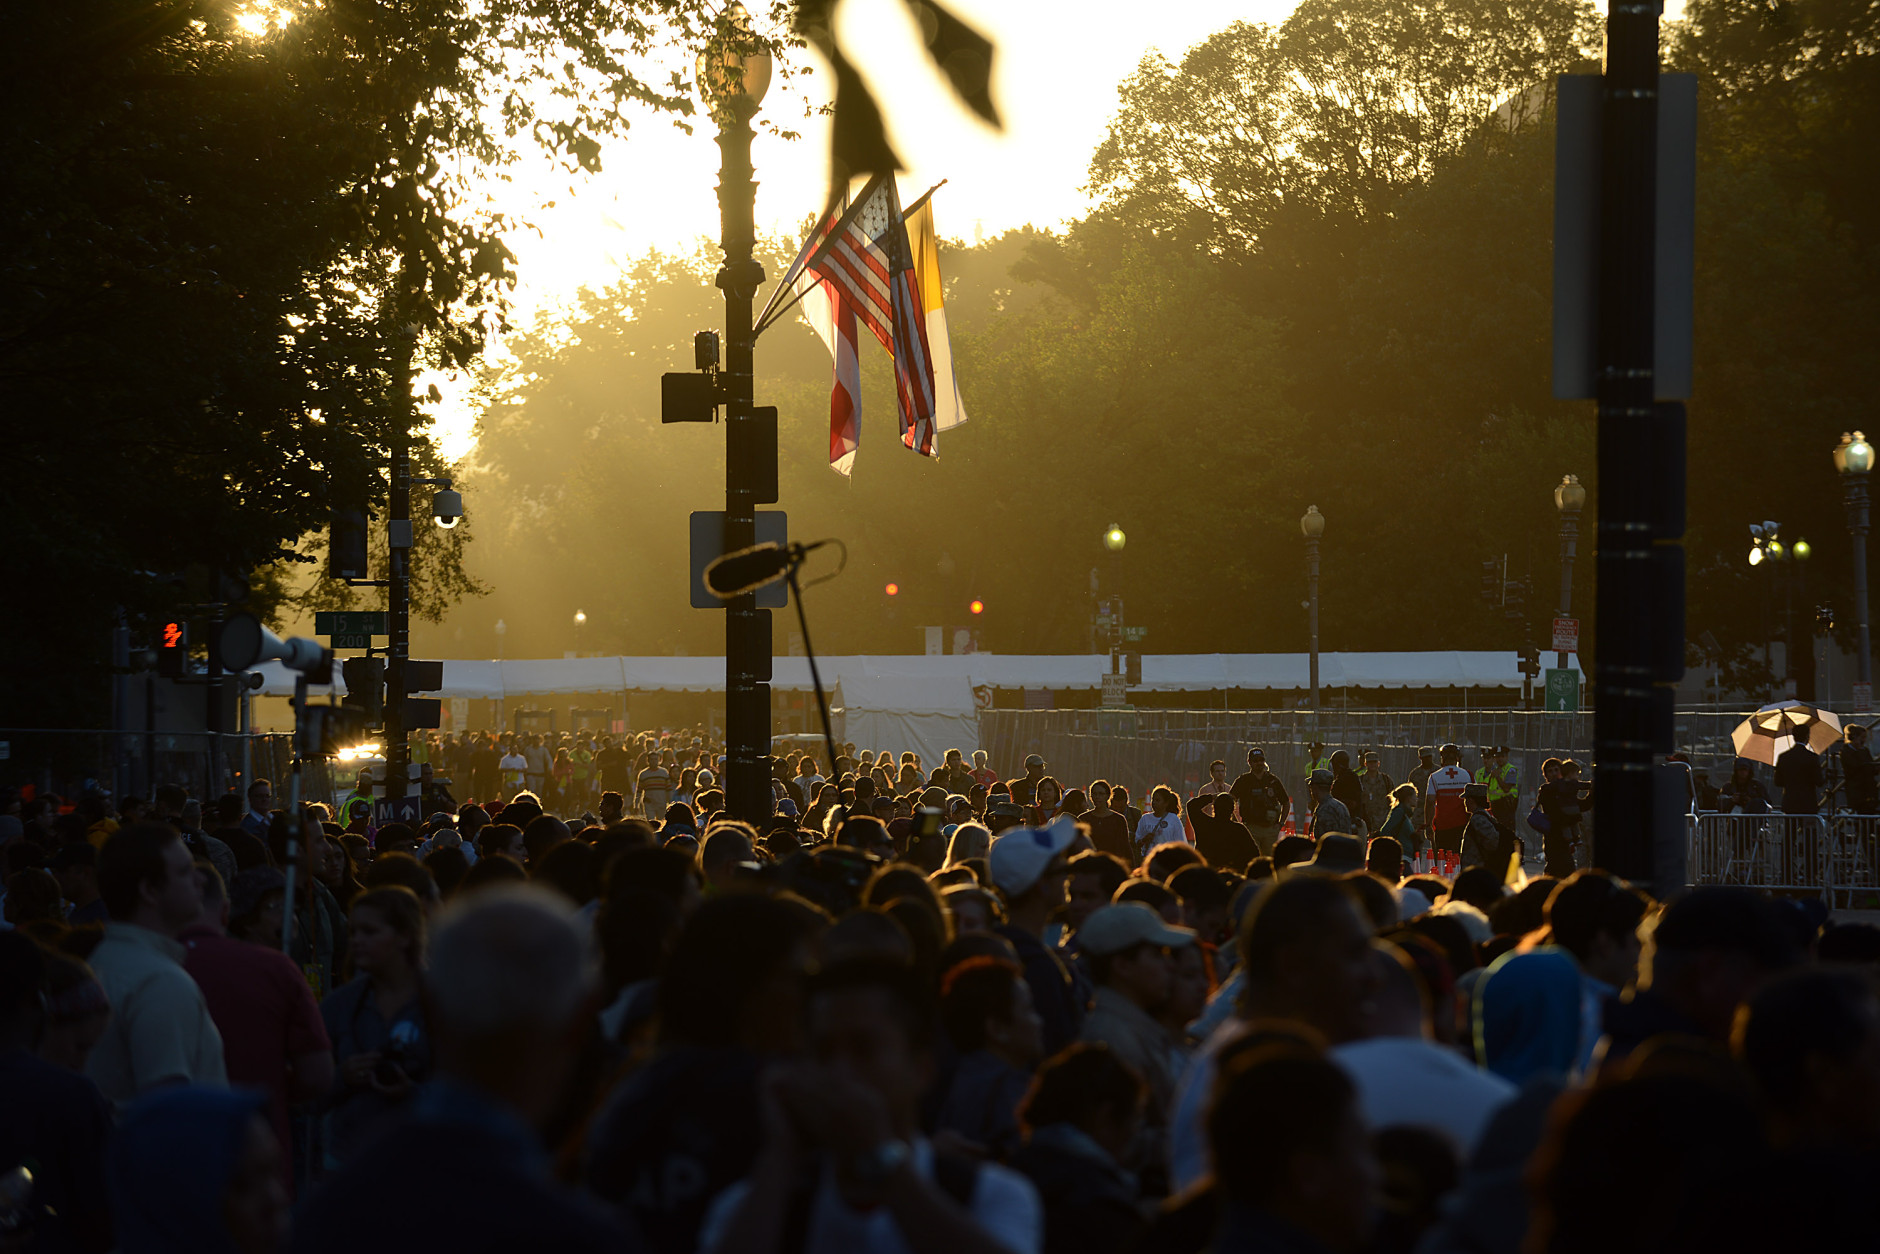 WASHINGTON, DC - SEPTEMBER 23: Hundreds of spectators pass through a security check as early as 5 am along the parade route of pope Francis around the Ellipse, south of the White House, September 23, 2015  in Washington, DC. People are gathering near the Ellipse to catch a glimpse of Pope Francis, where he is due to be greeted by President Obama during an official arrival ceremony. (Photo by Astrid Riecken/Getty Images)